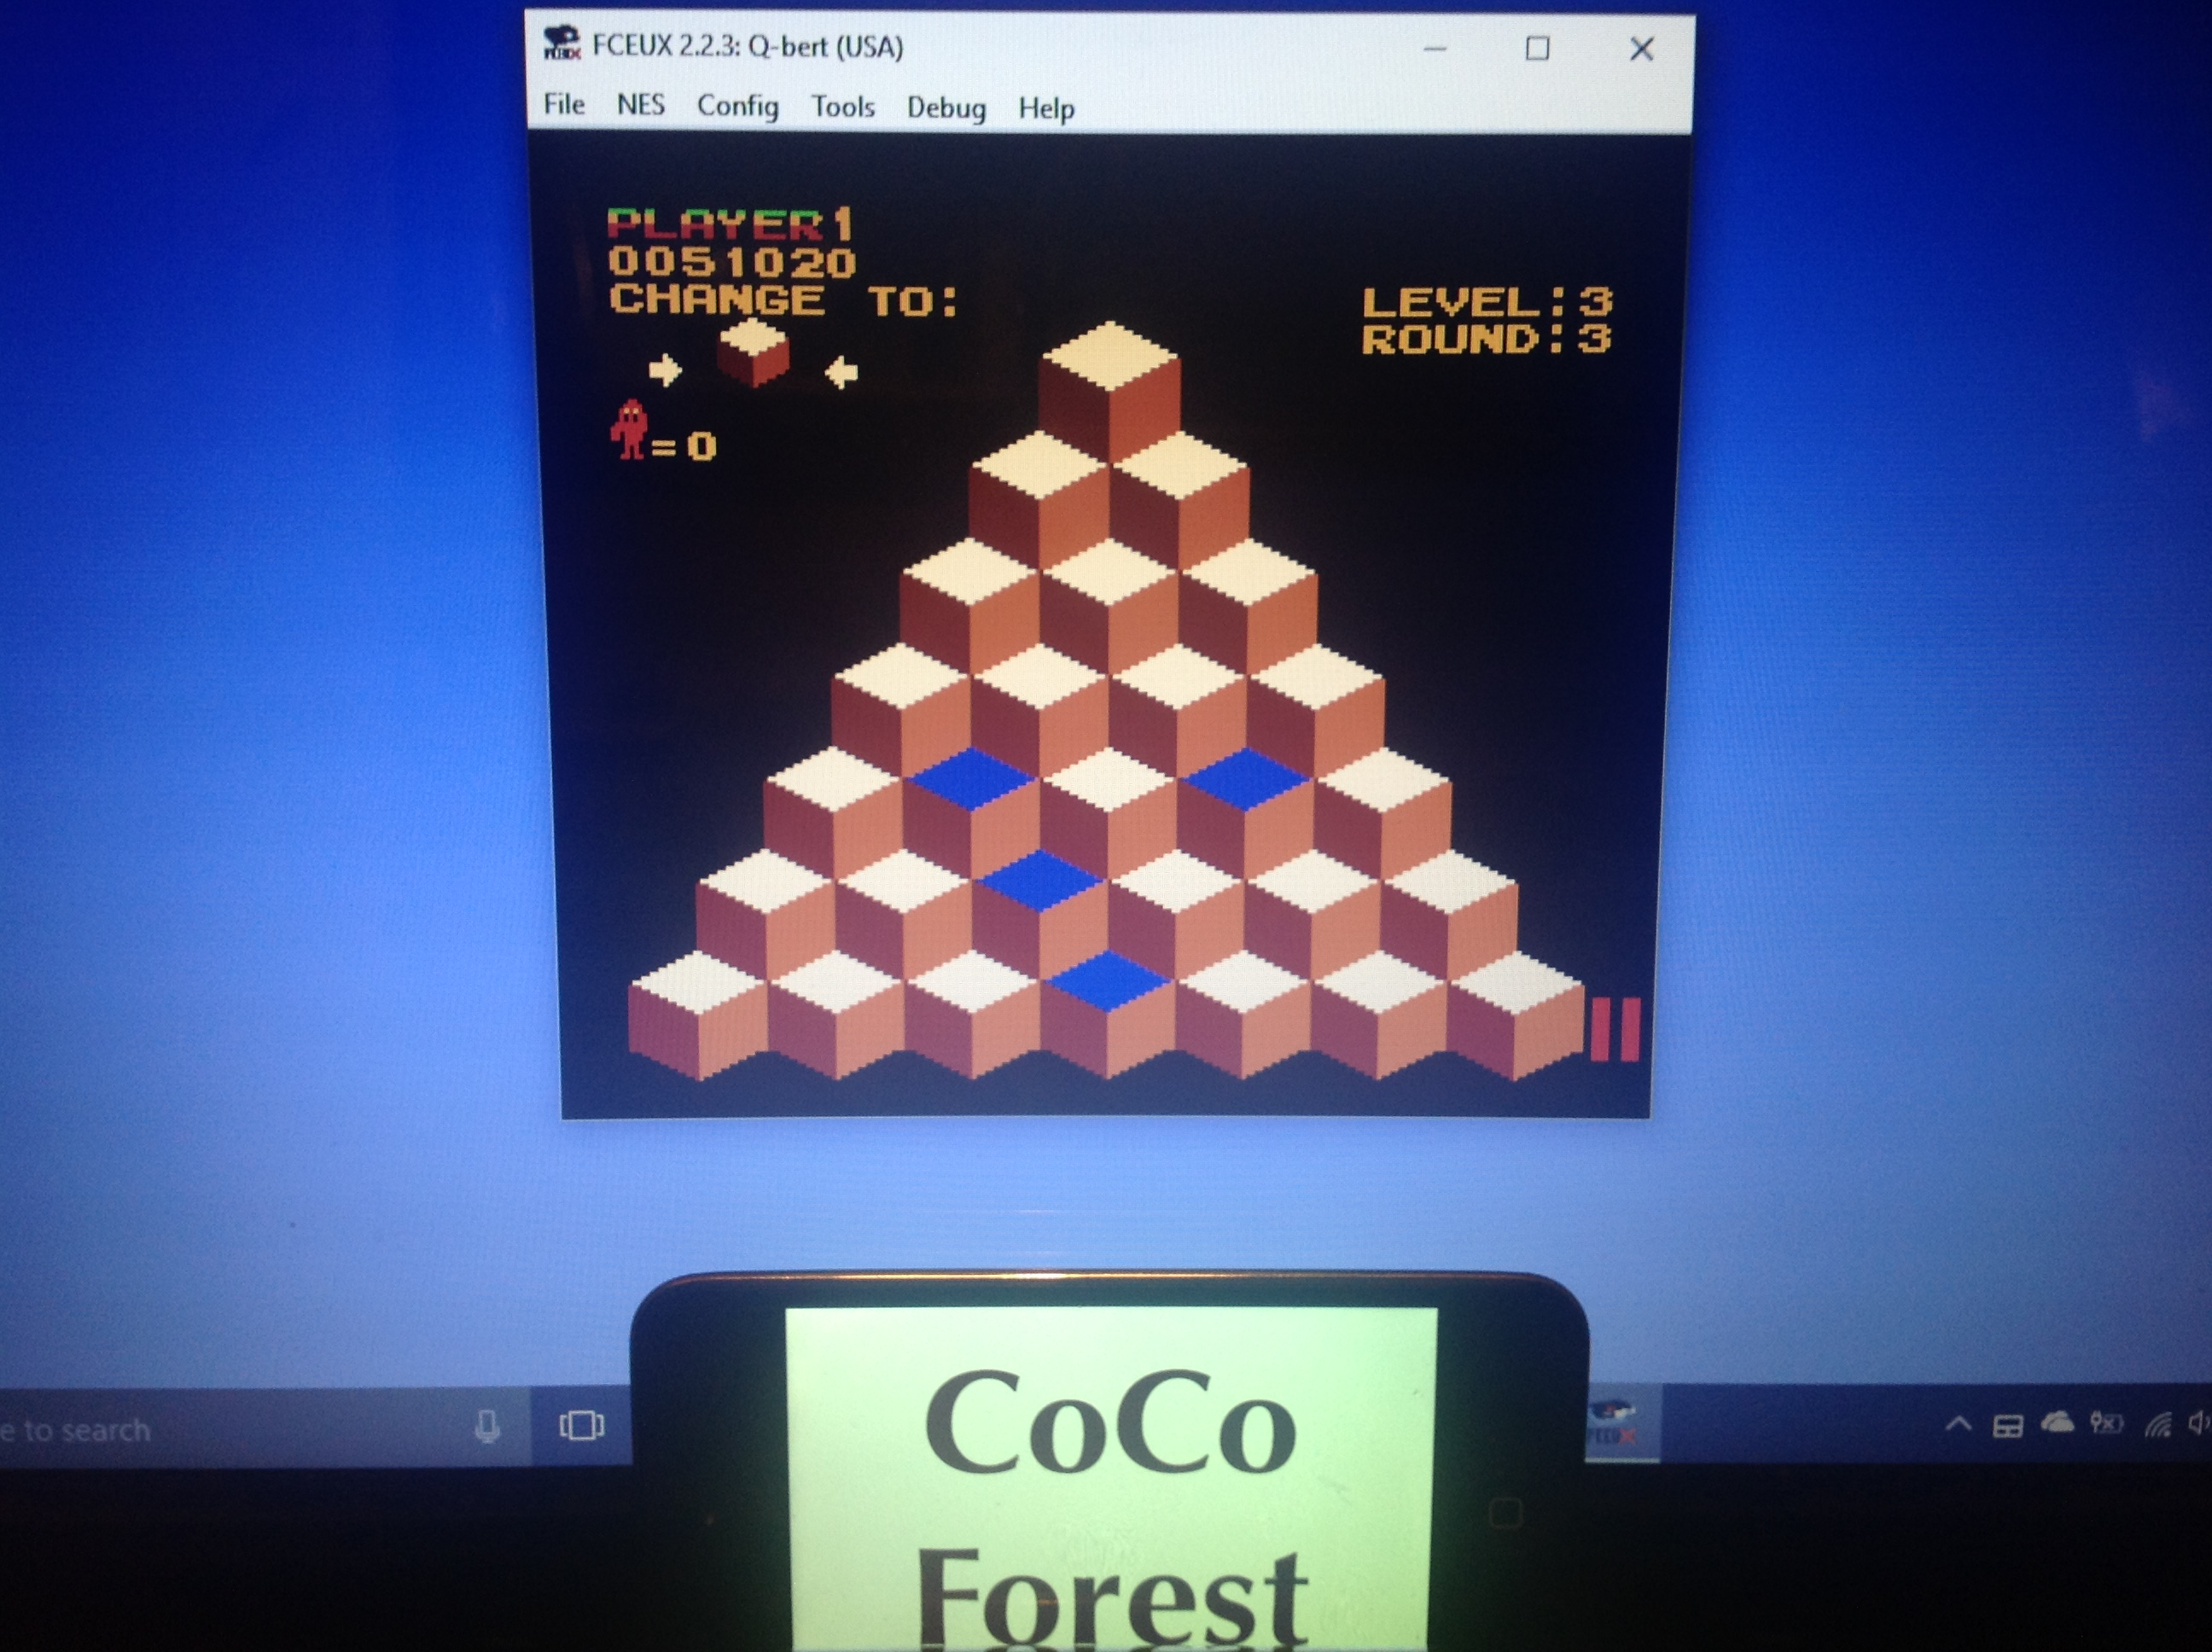 CoCoForest: Q*Bert (NES/Famicom Emulated) 51,020 points on 2018-01-30 11:09:32